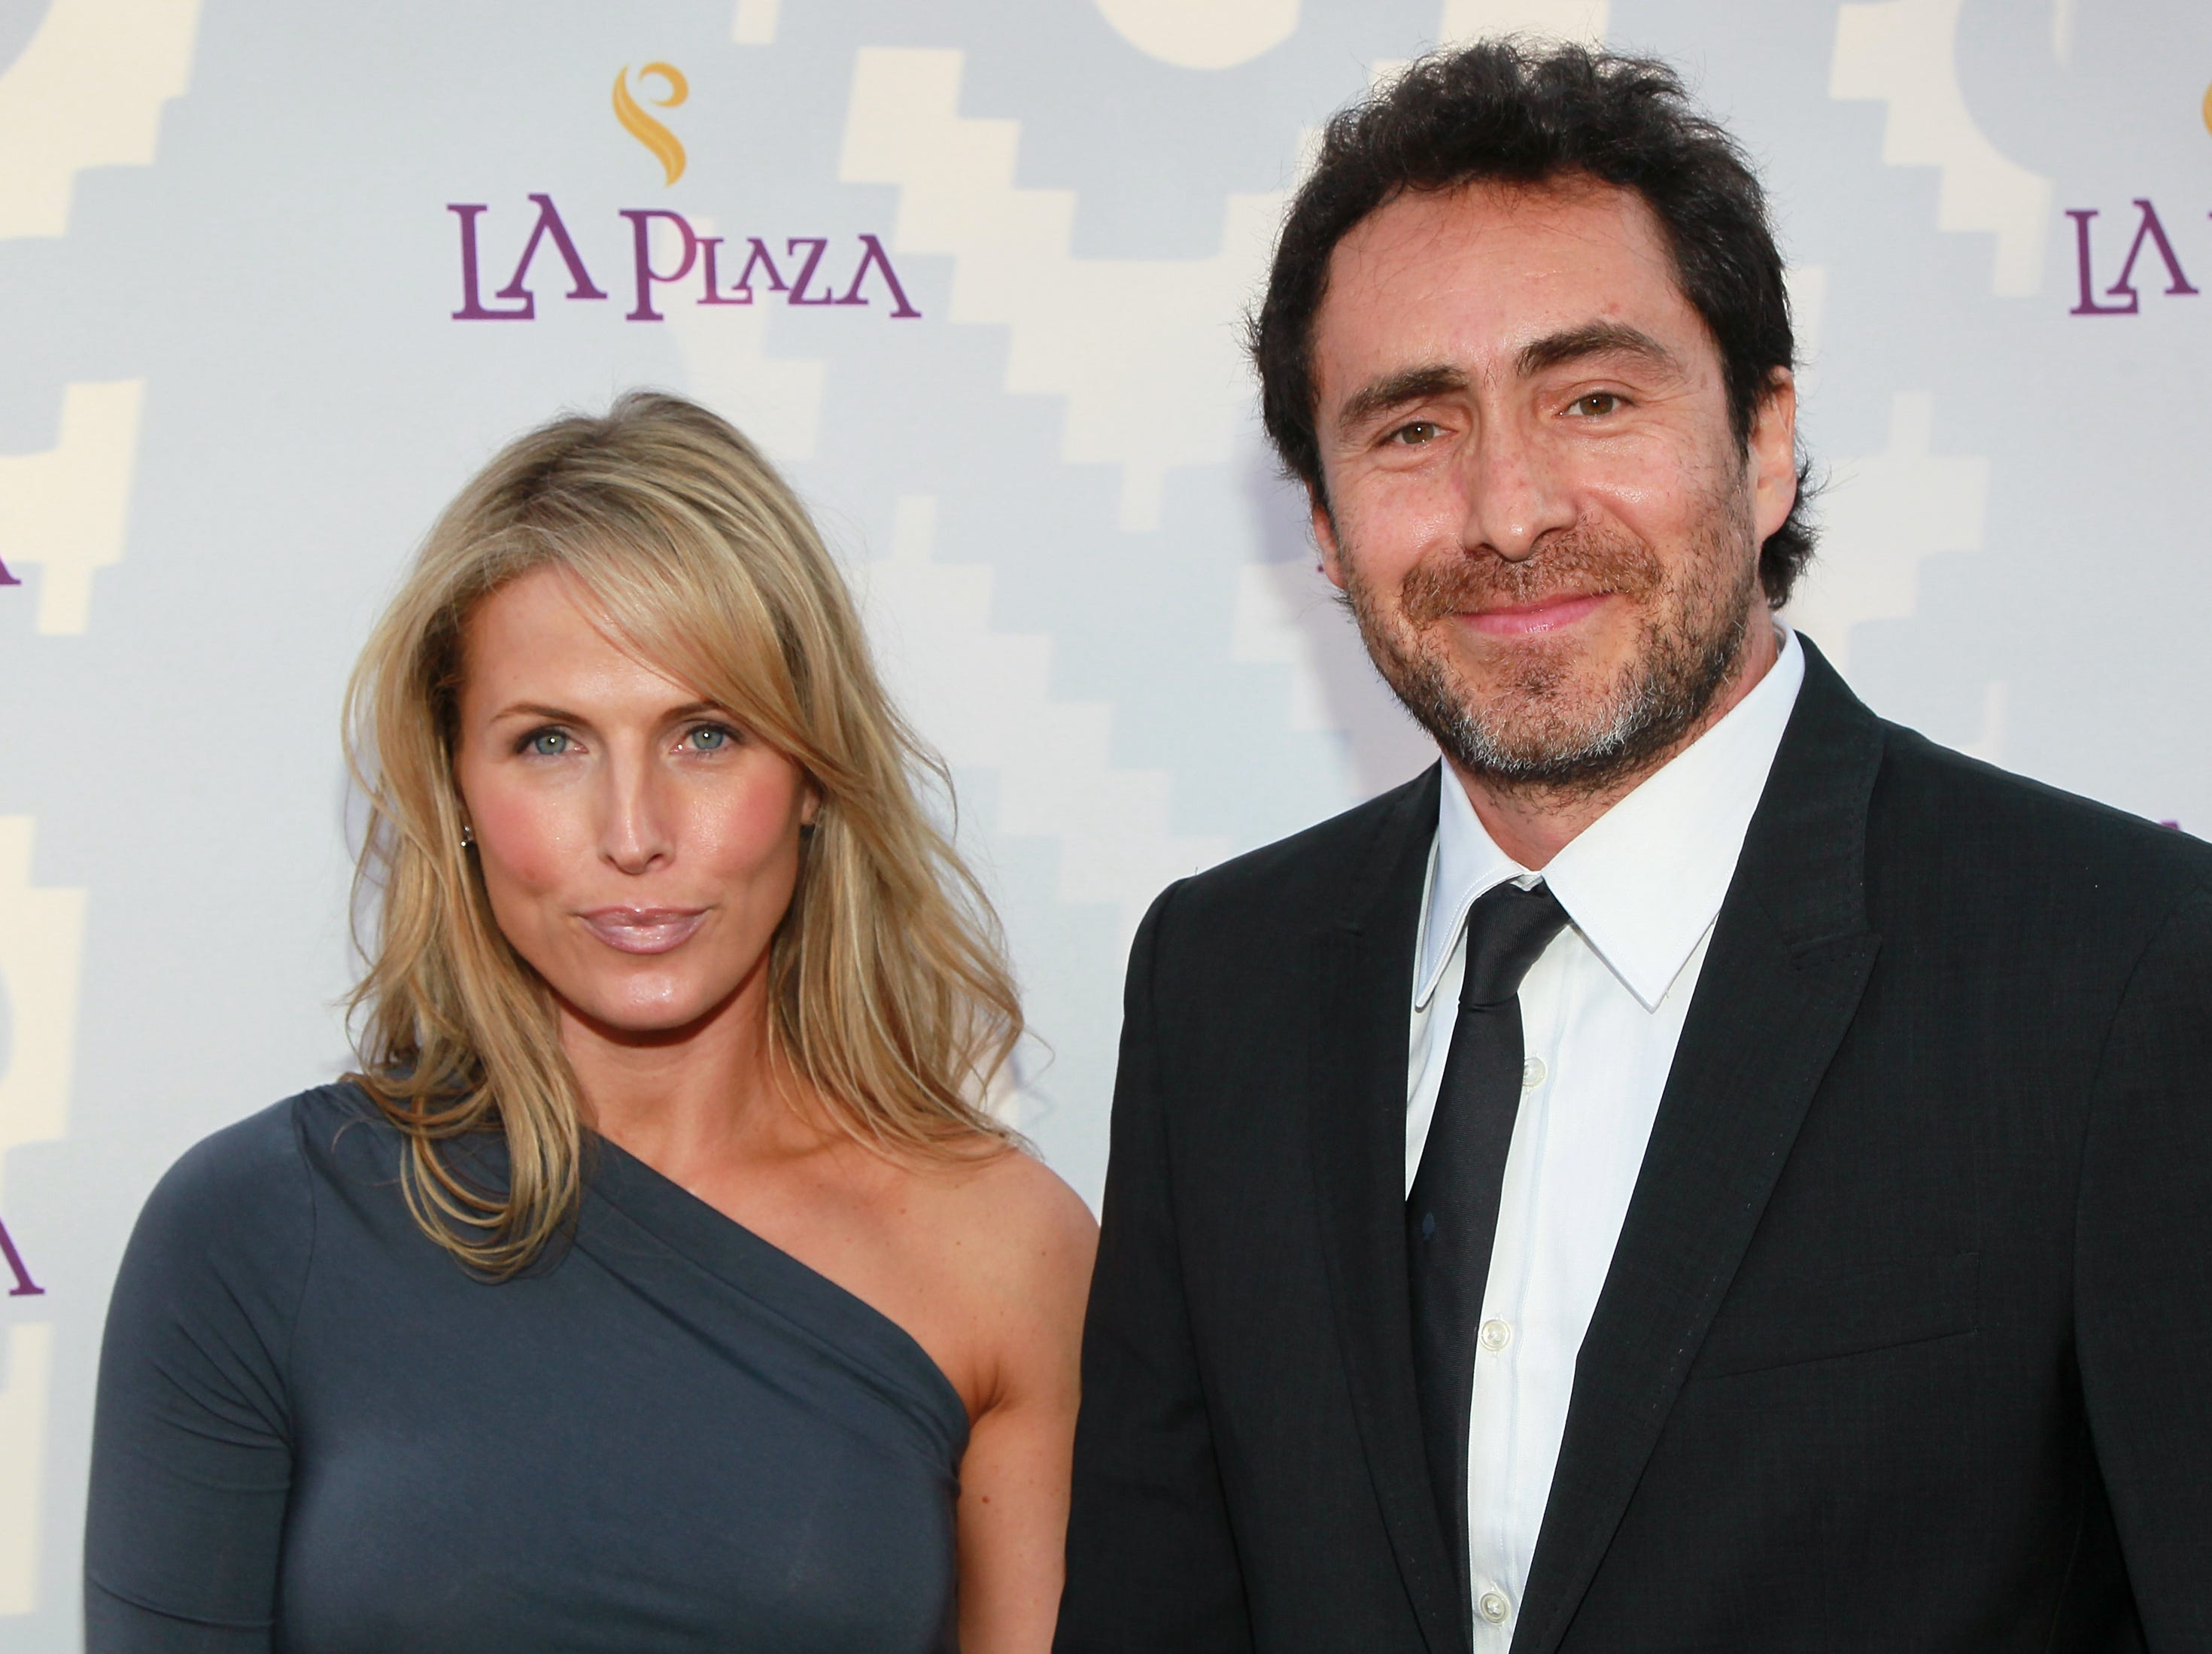 Demian Bichir and Stefanie Sherk attend the Inaugural Gala of LA Plaza de Cultura y Artes on April 9, 2011, in Los Angeles.